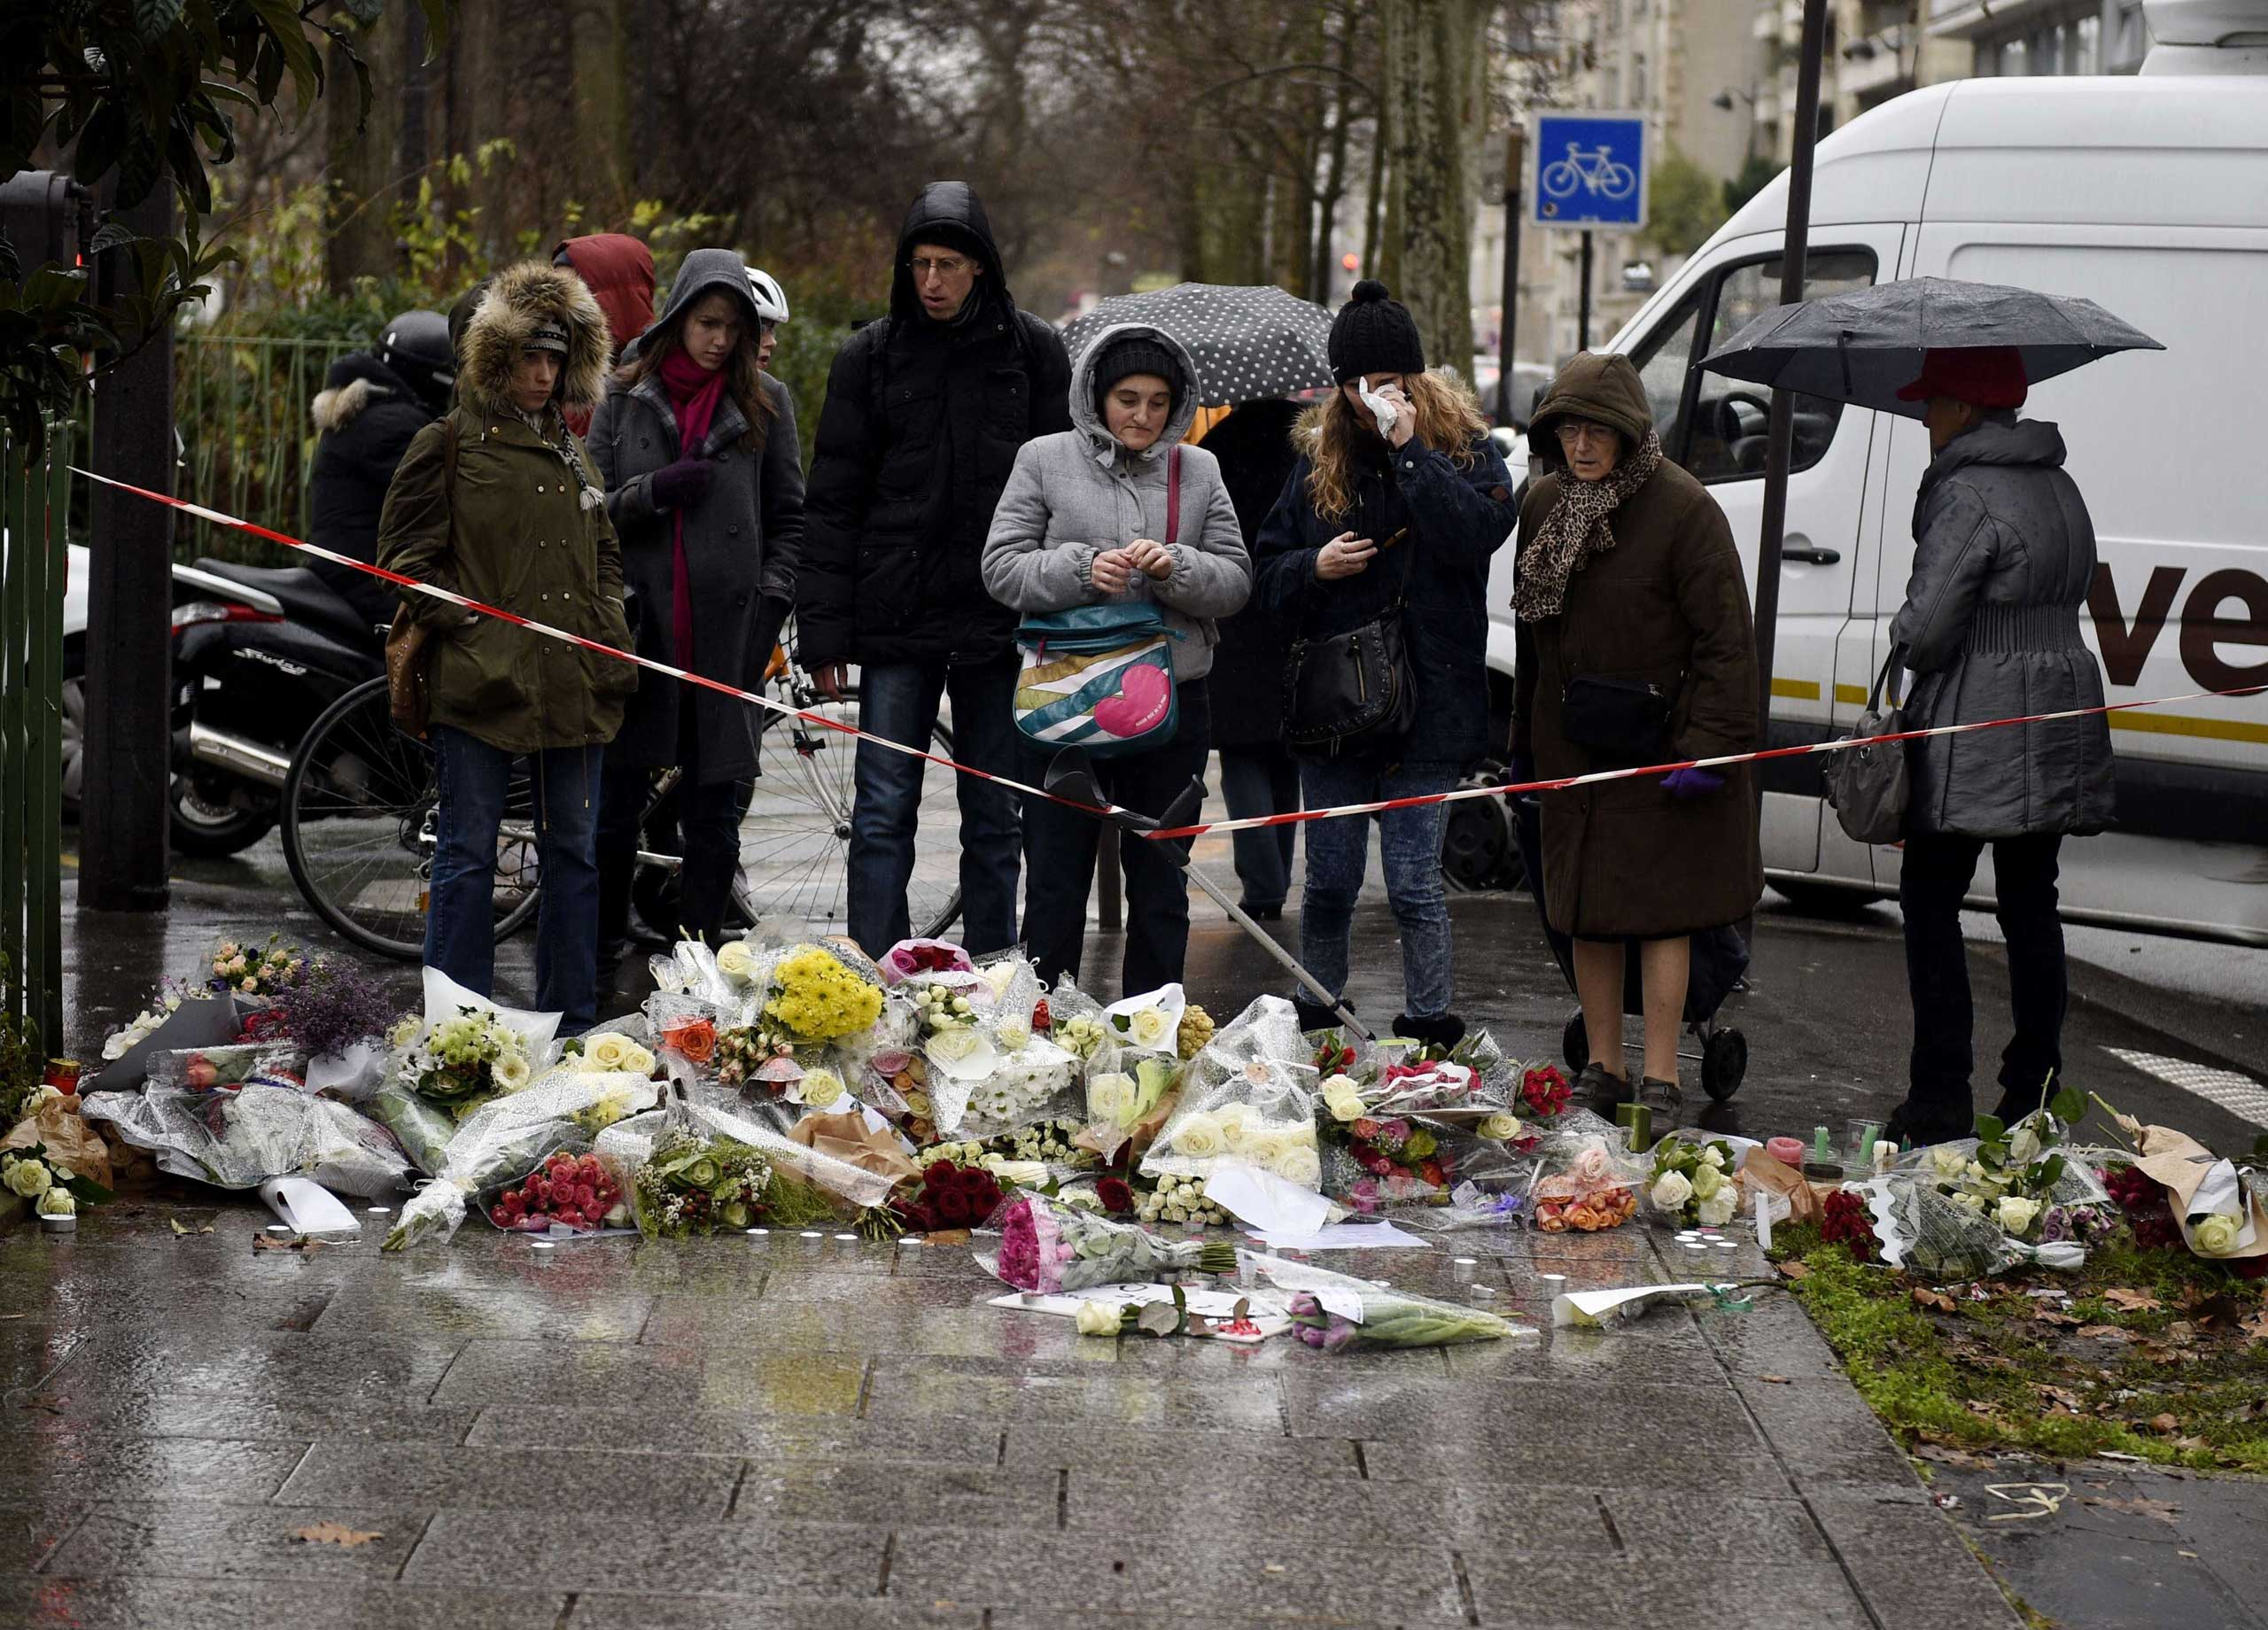 Floral tributes are laid on the ground during a minutes silence in Paris on Jan. 8, 2015.